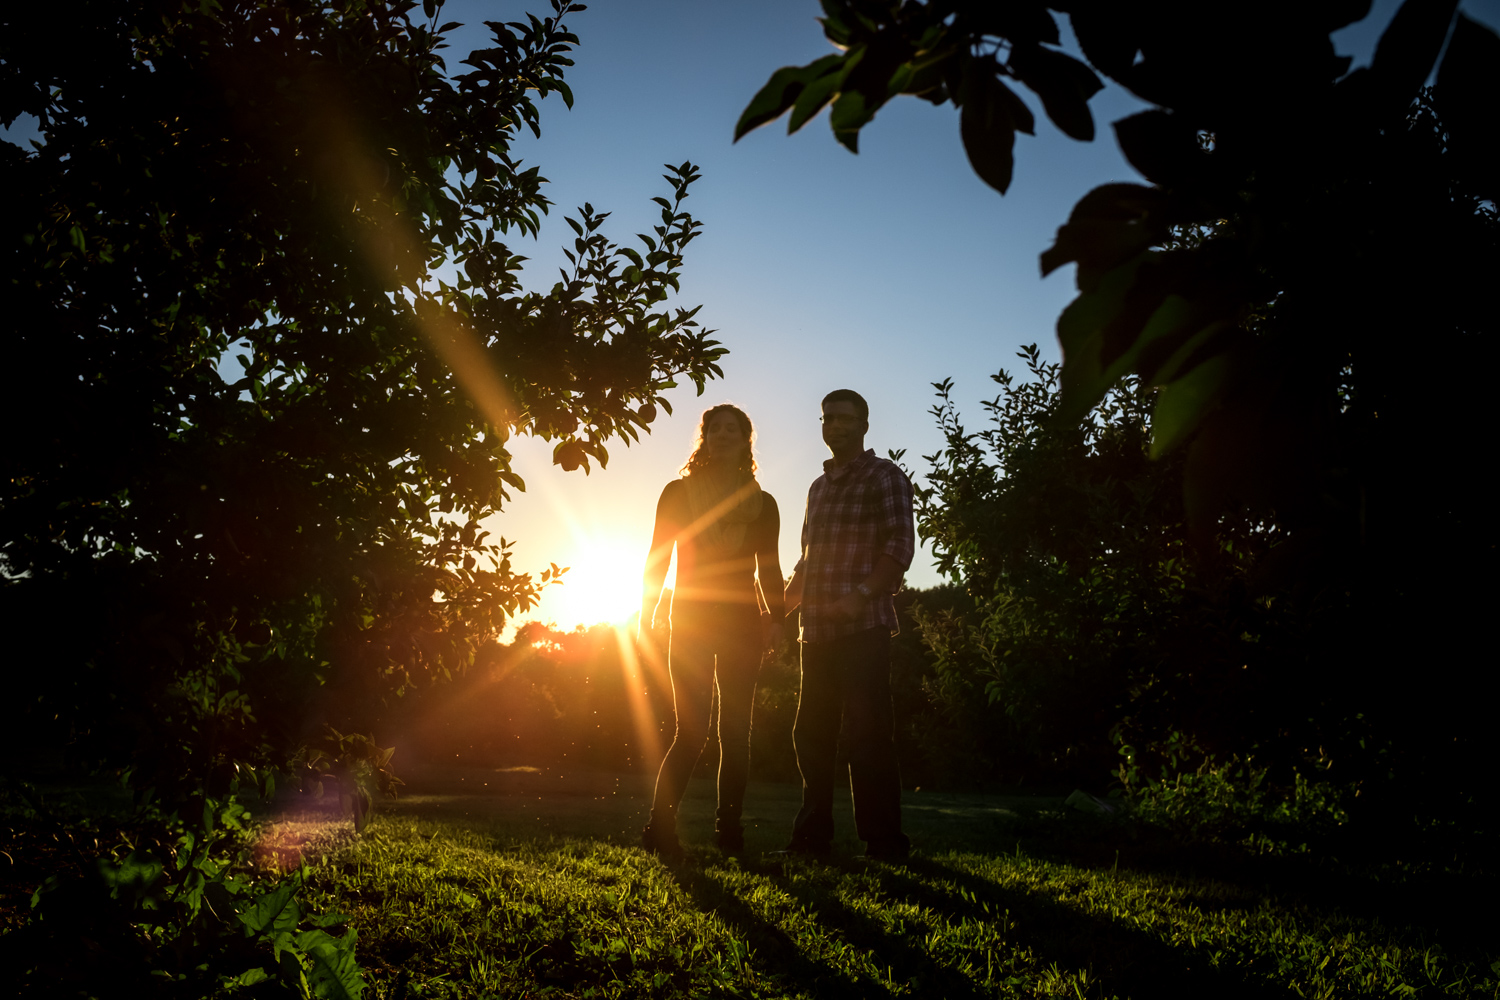 Sunburst during golden hour - Fun Ways to Photograph Couples That are a Bit Awkward